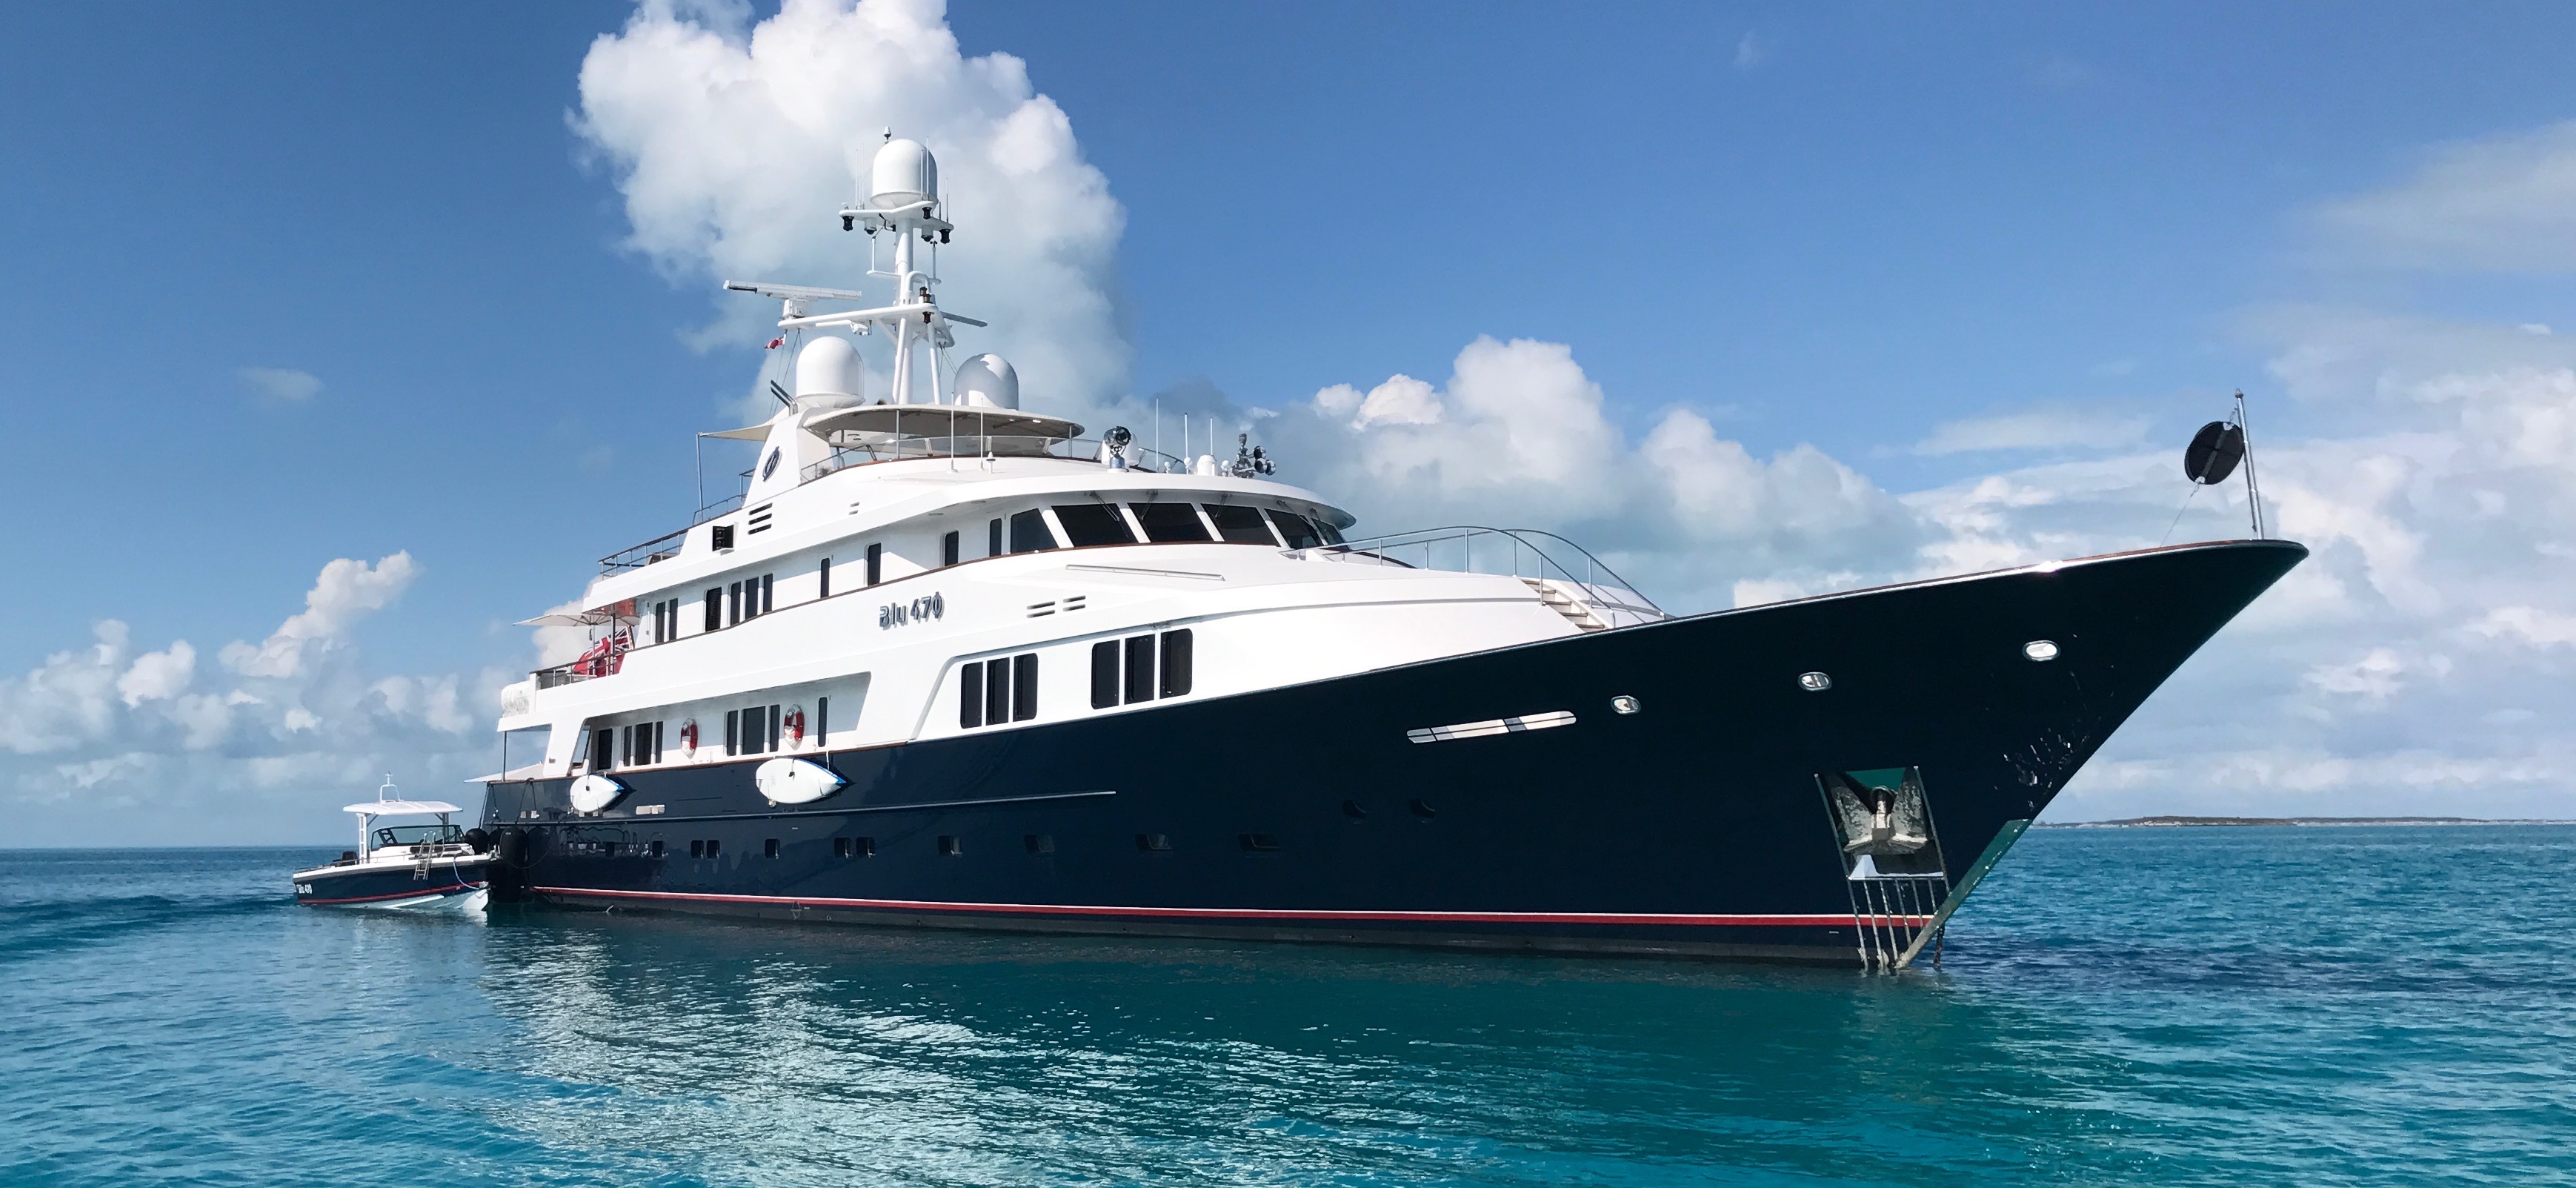 BLU-470-yacht-for-sale-for-charter-vbs-01.jpg